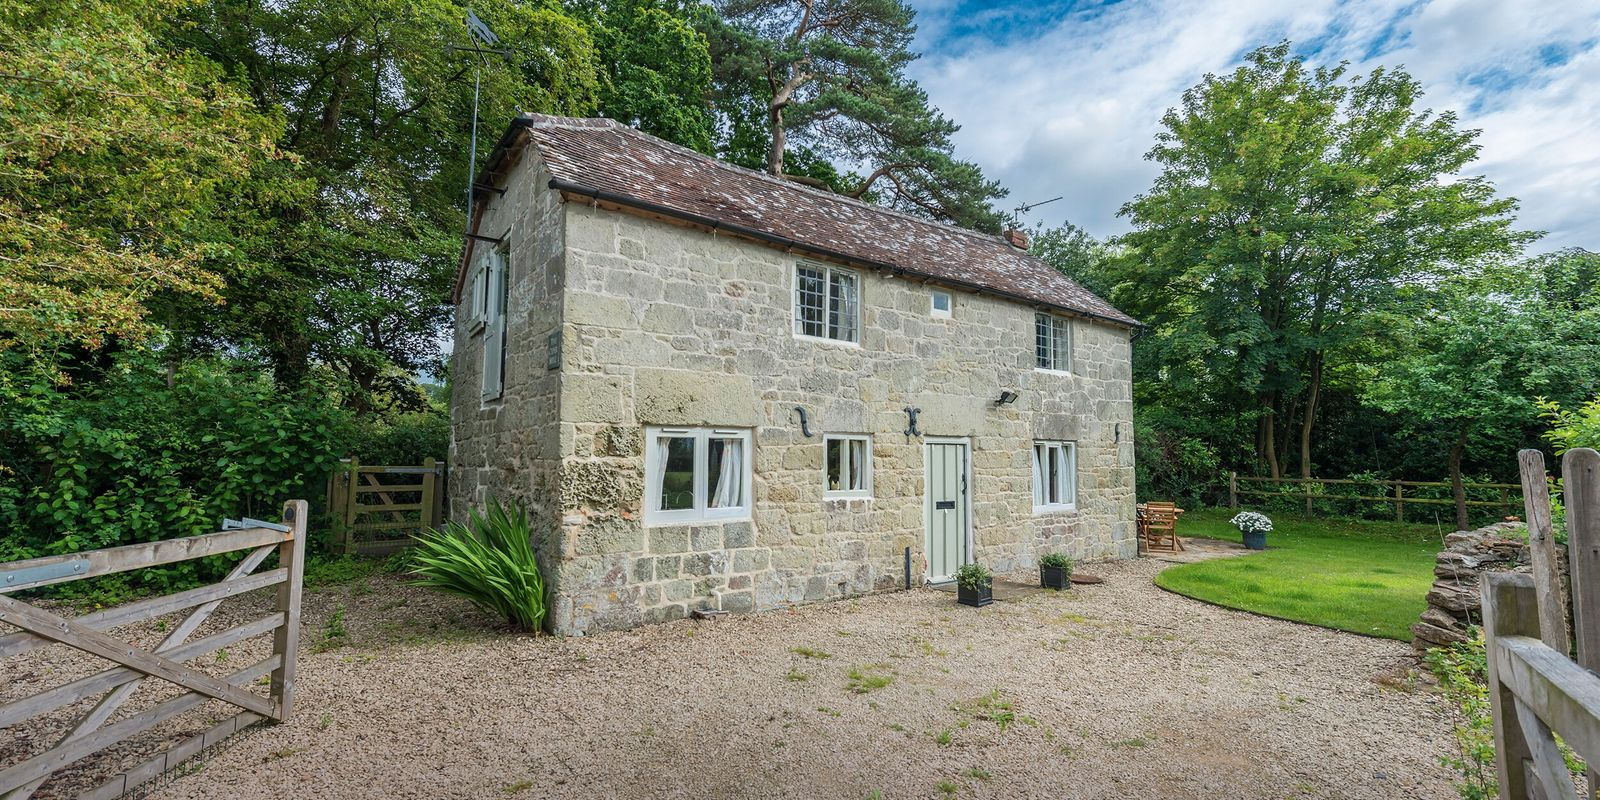 Win a £550 voucher to spend on a cottage stay in Dorset